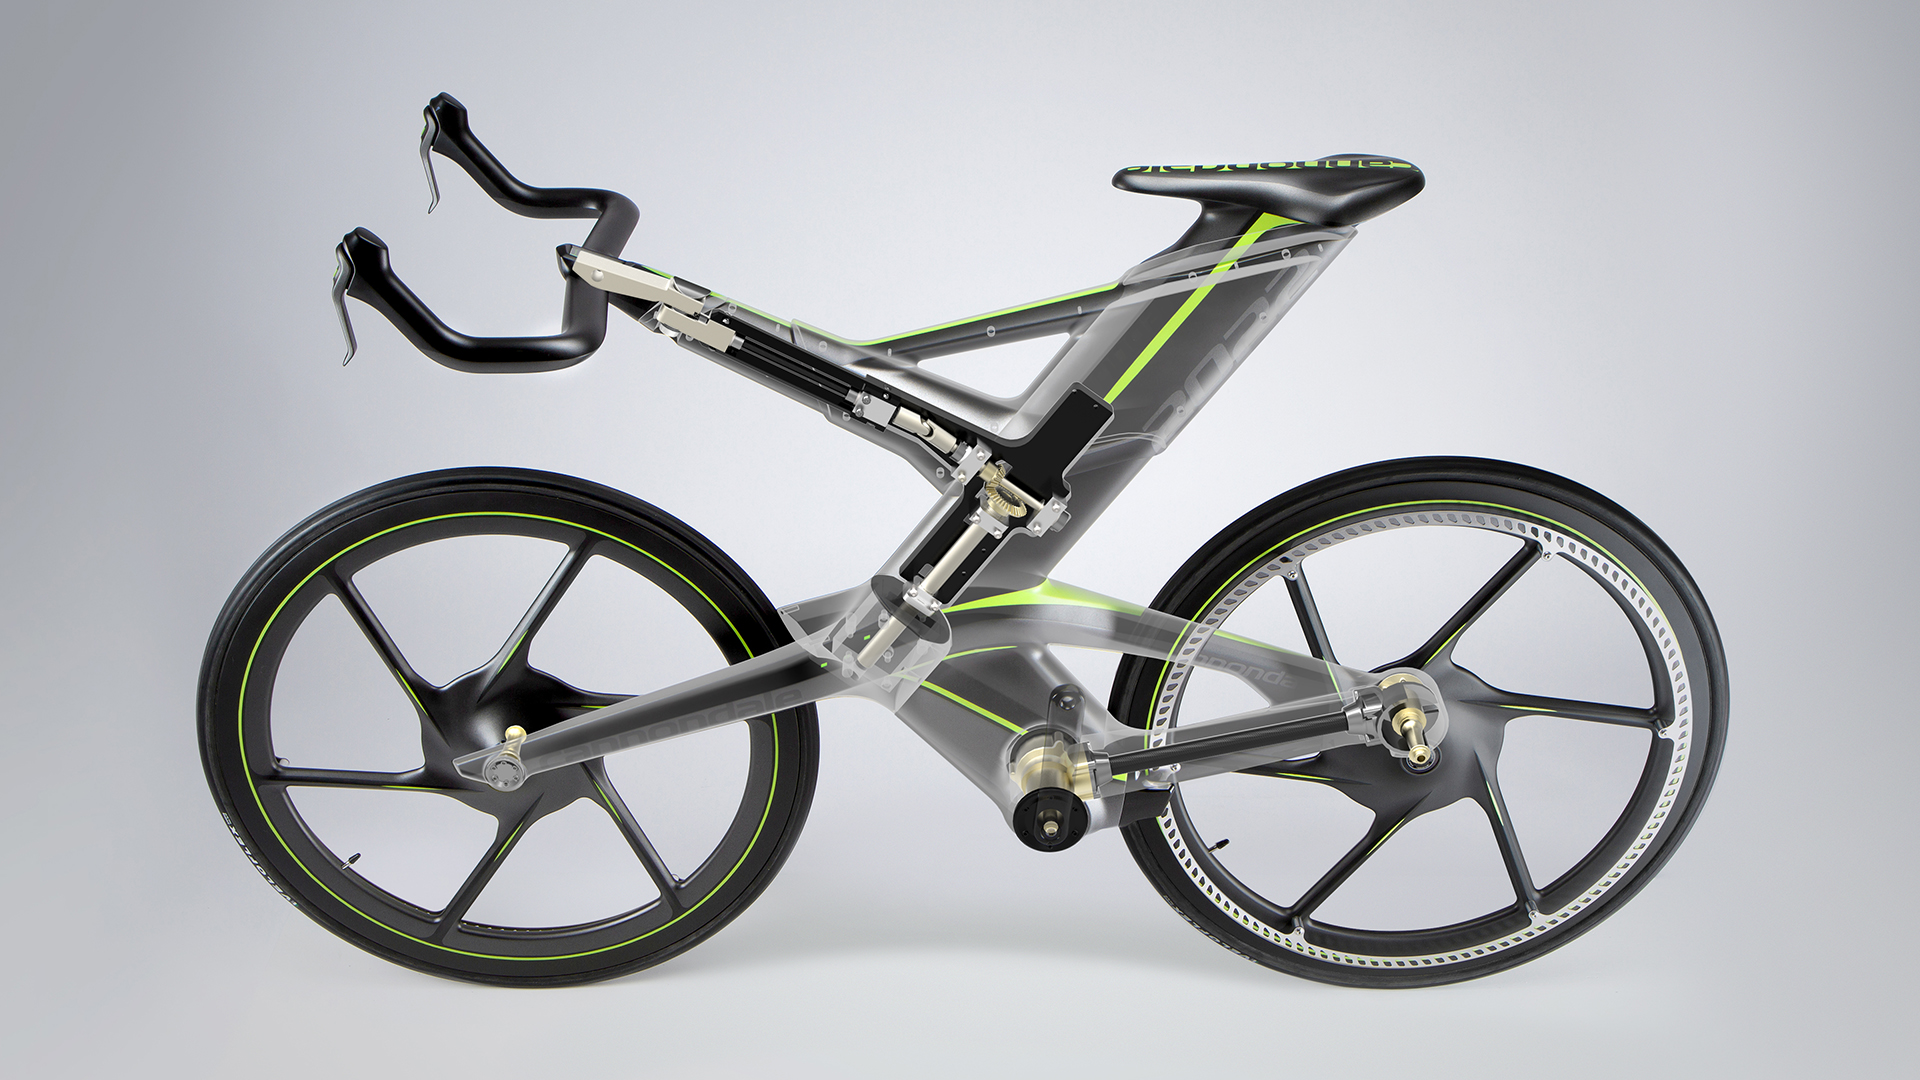 priority_designs_bicycle_design_engineering_and_development_consulting_005